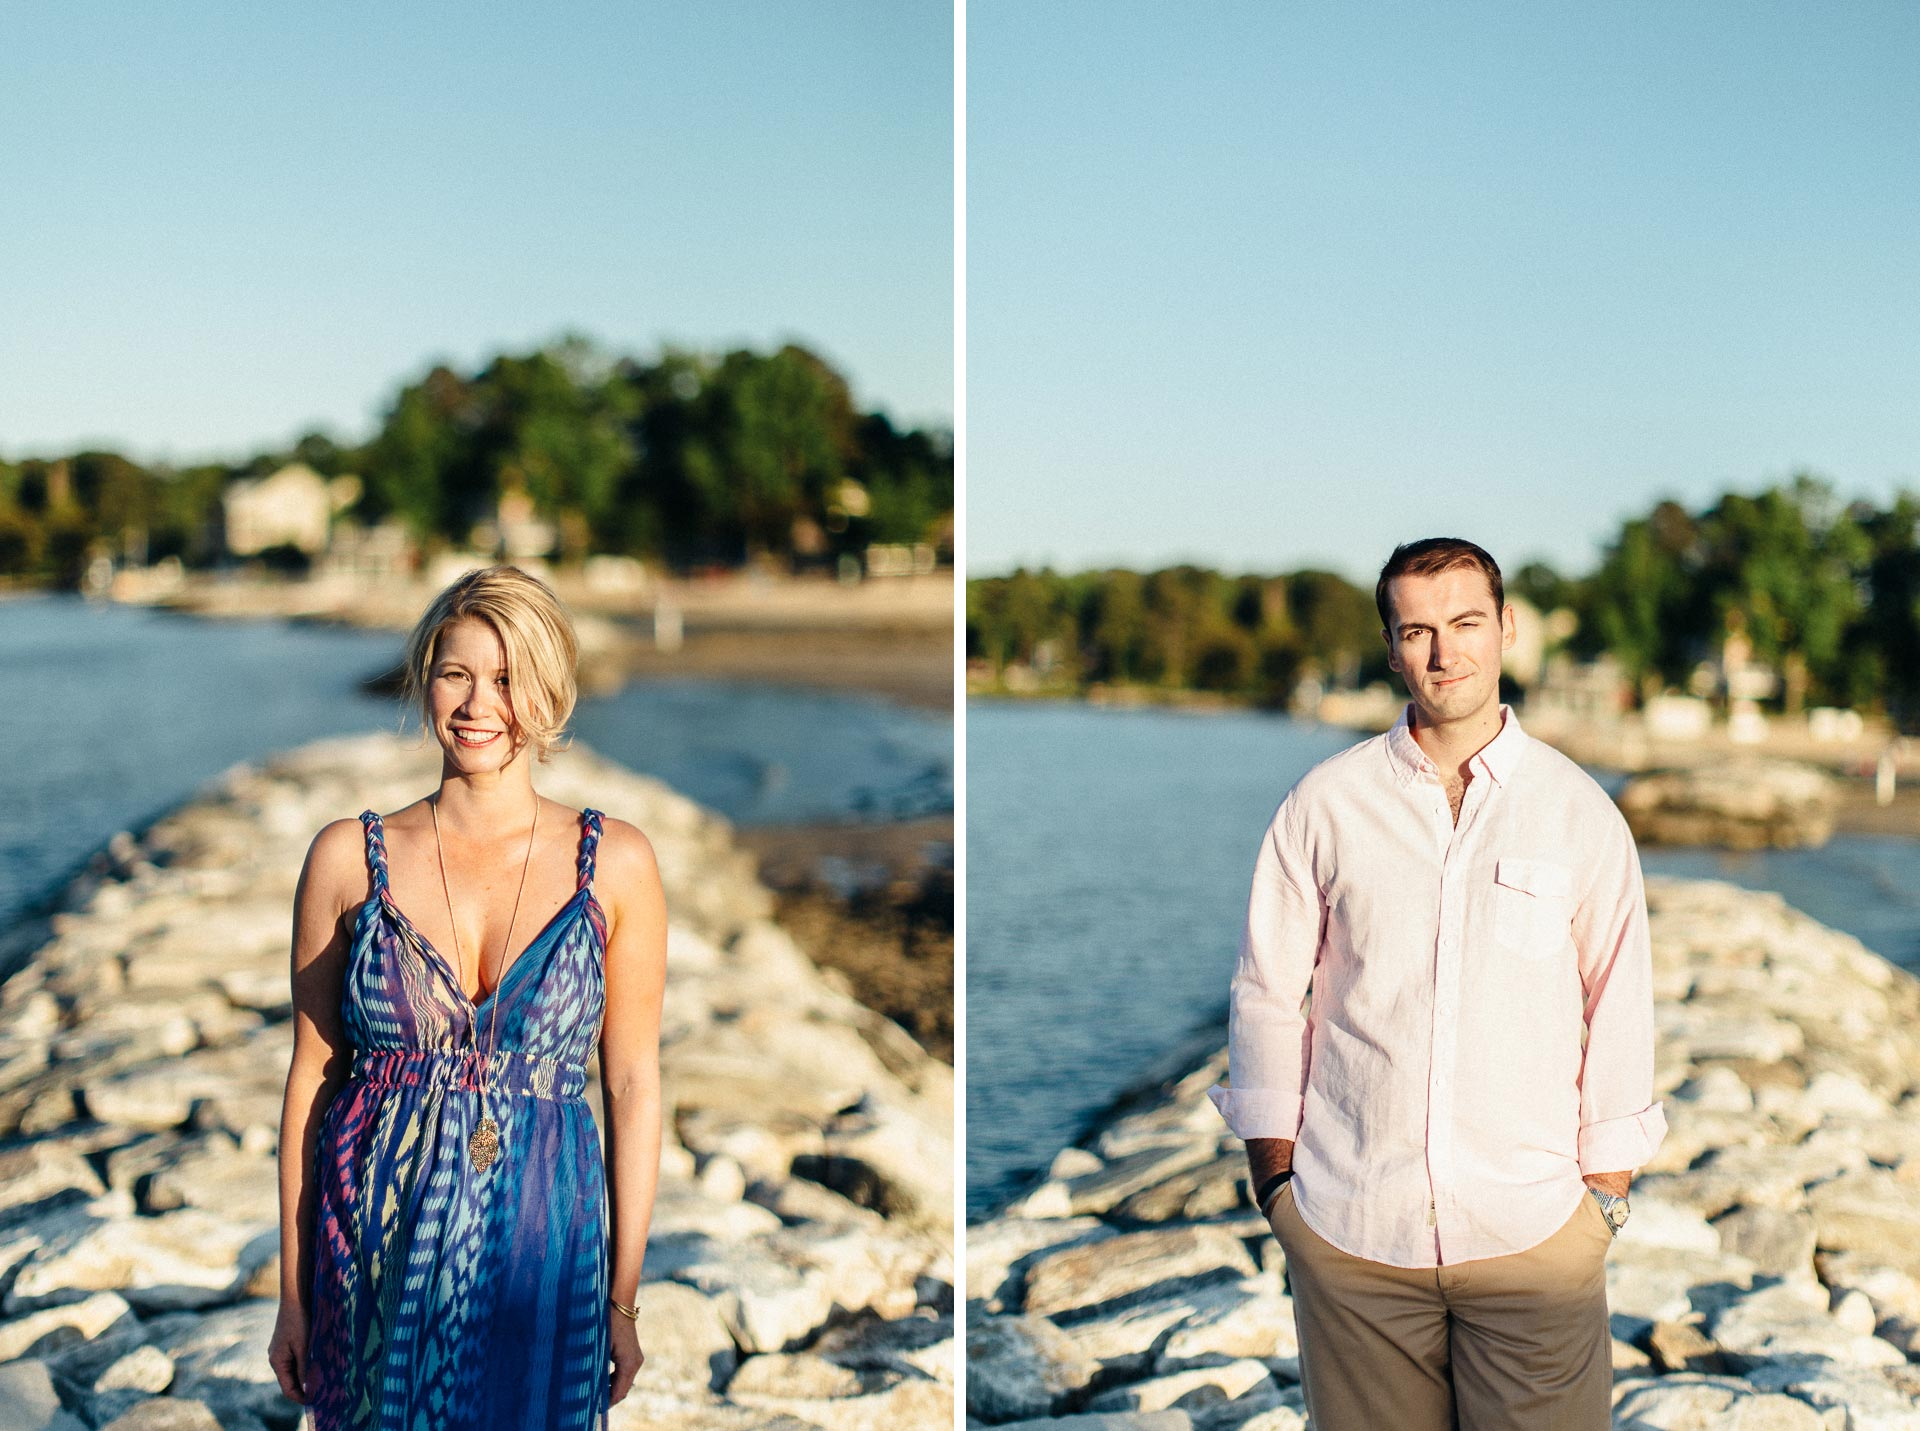 Kristin_Sasa_Engagement_Herrington_Maryland_JeanLaurentGaudy_MIX001